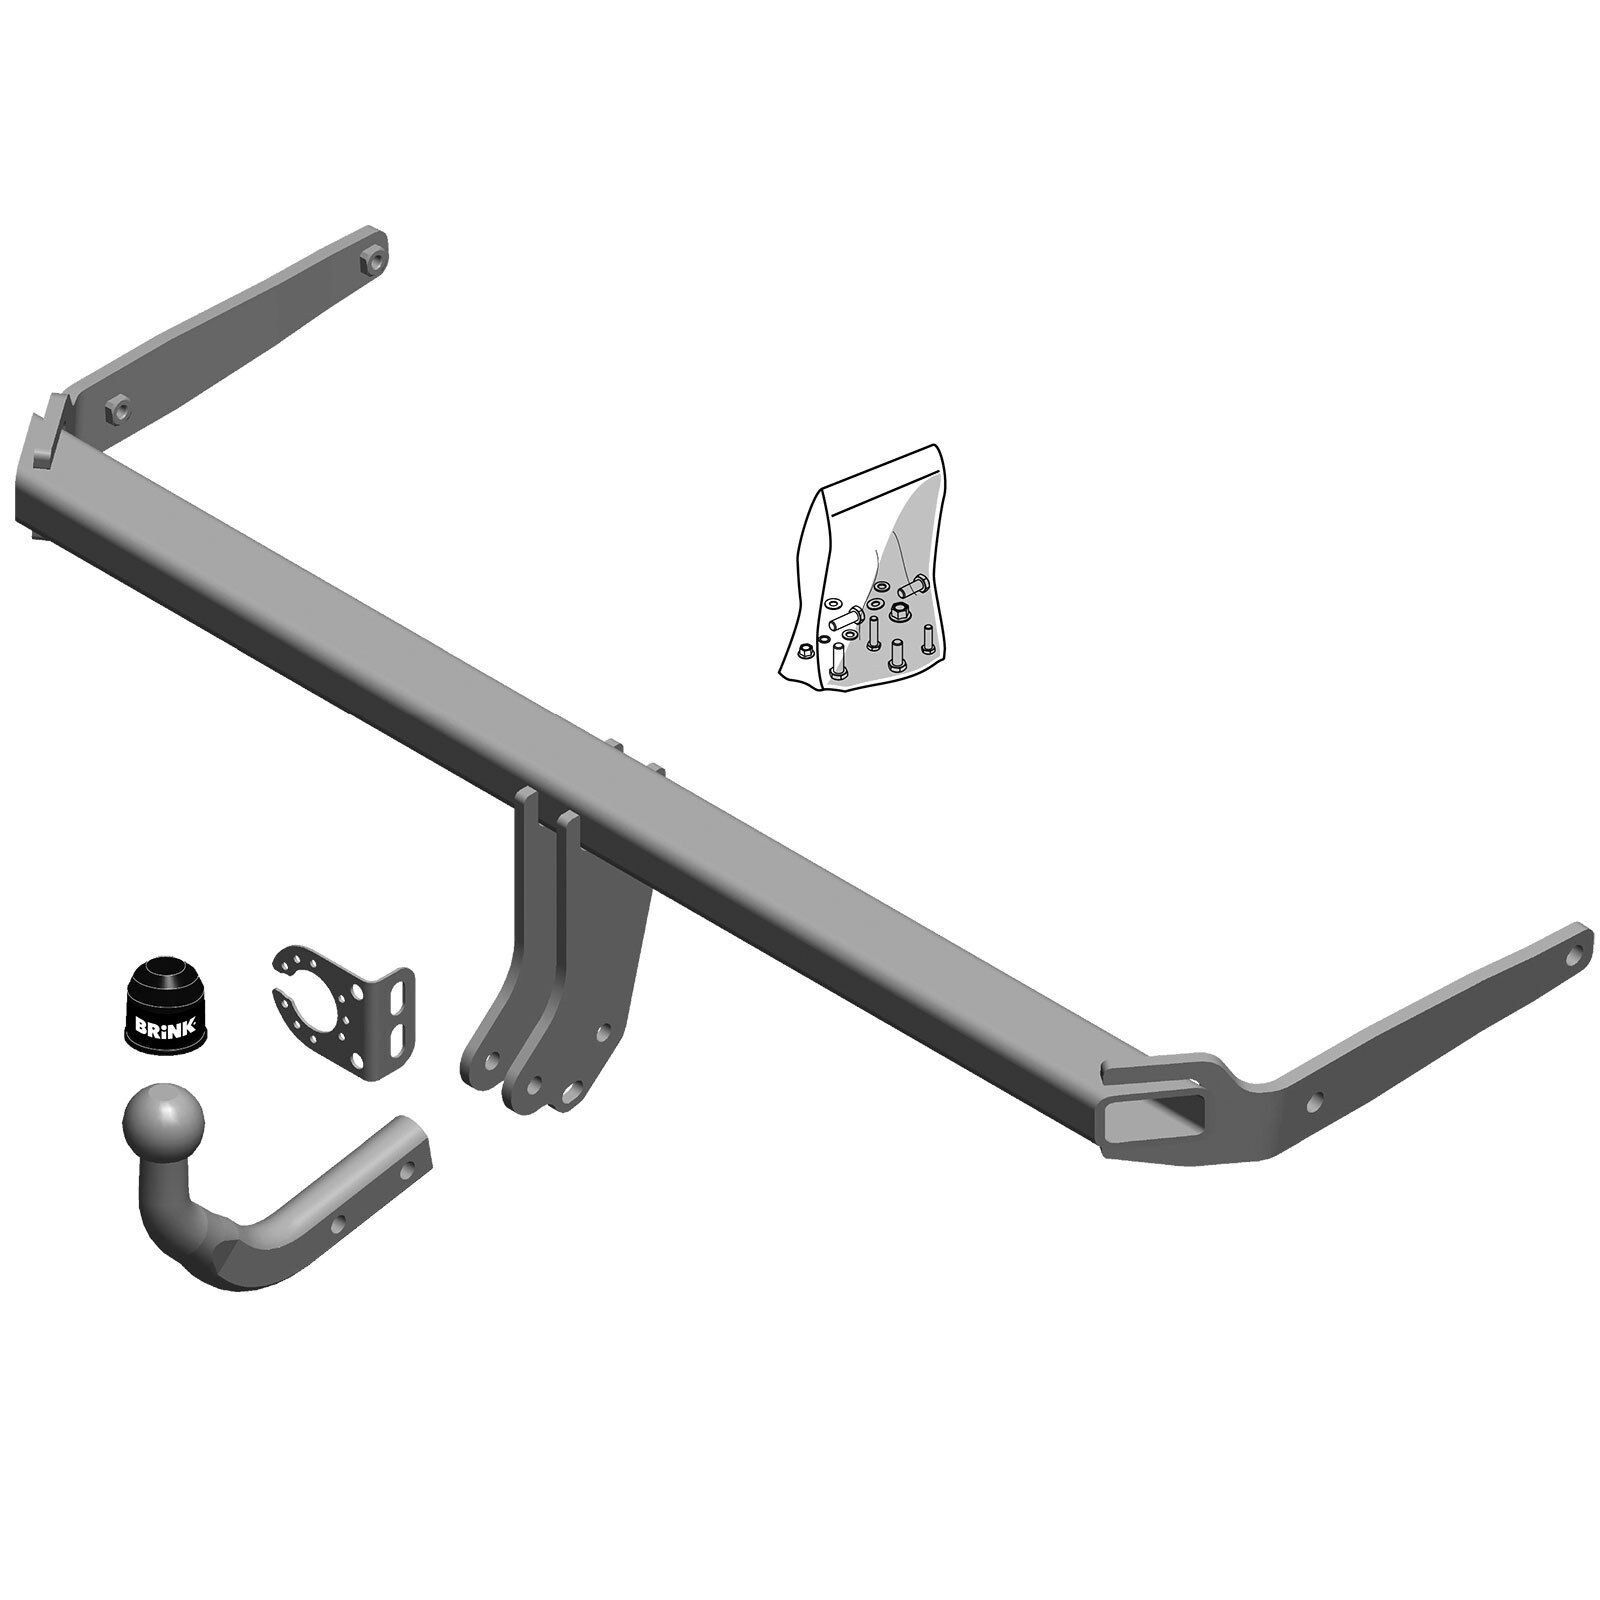 Swan Neck Tow Bar Brink Towbar for Volkswagen Polo Hatchback 2001-2009